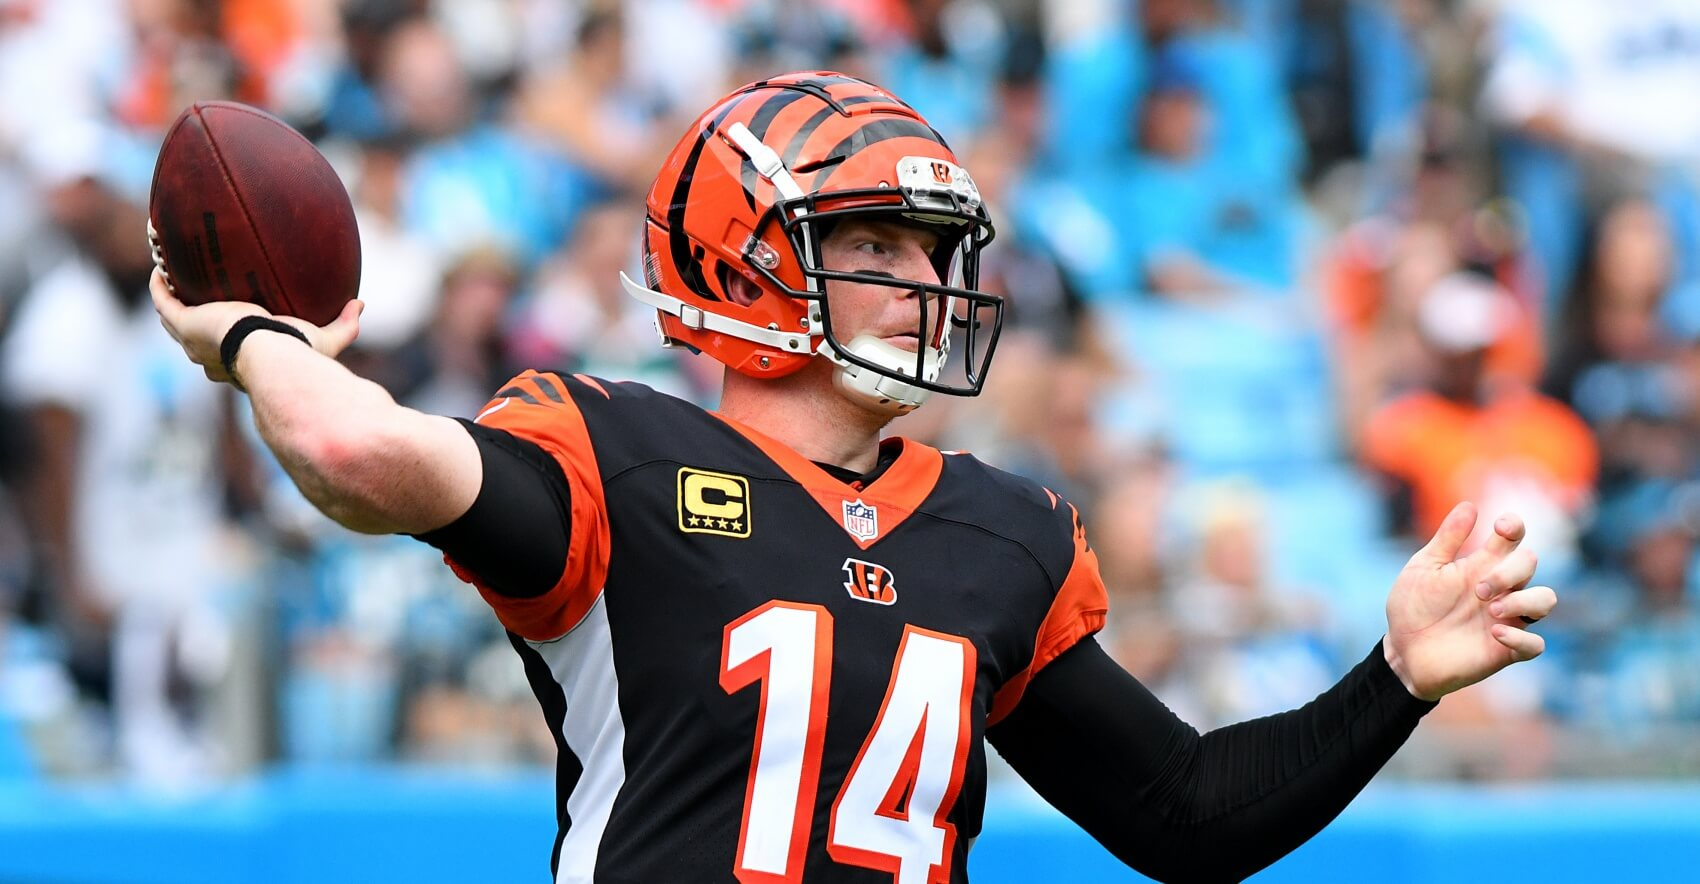 Fantasy Football: Decoding the Top 12 QBs in Week 4